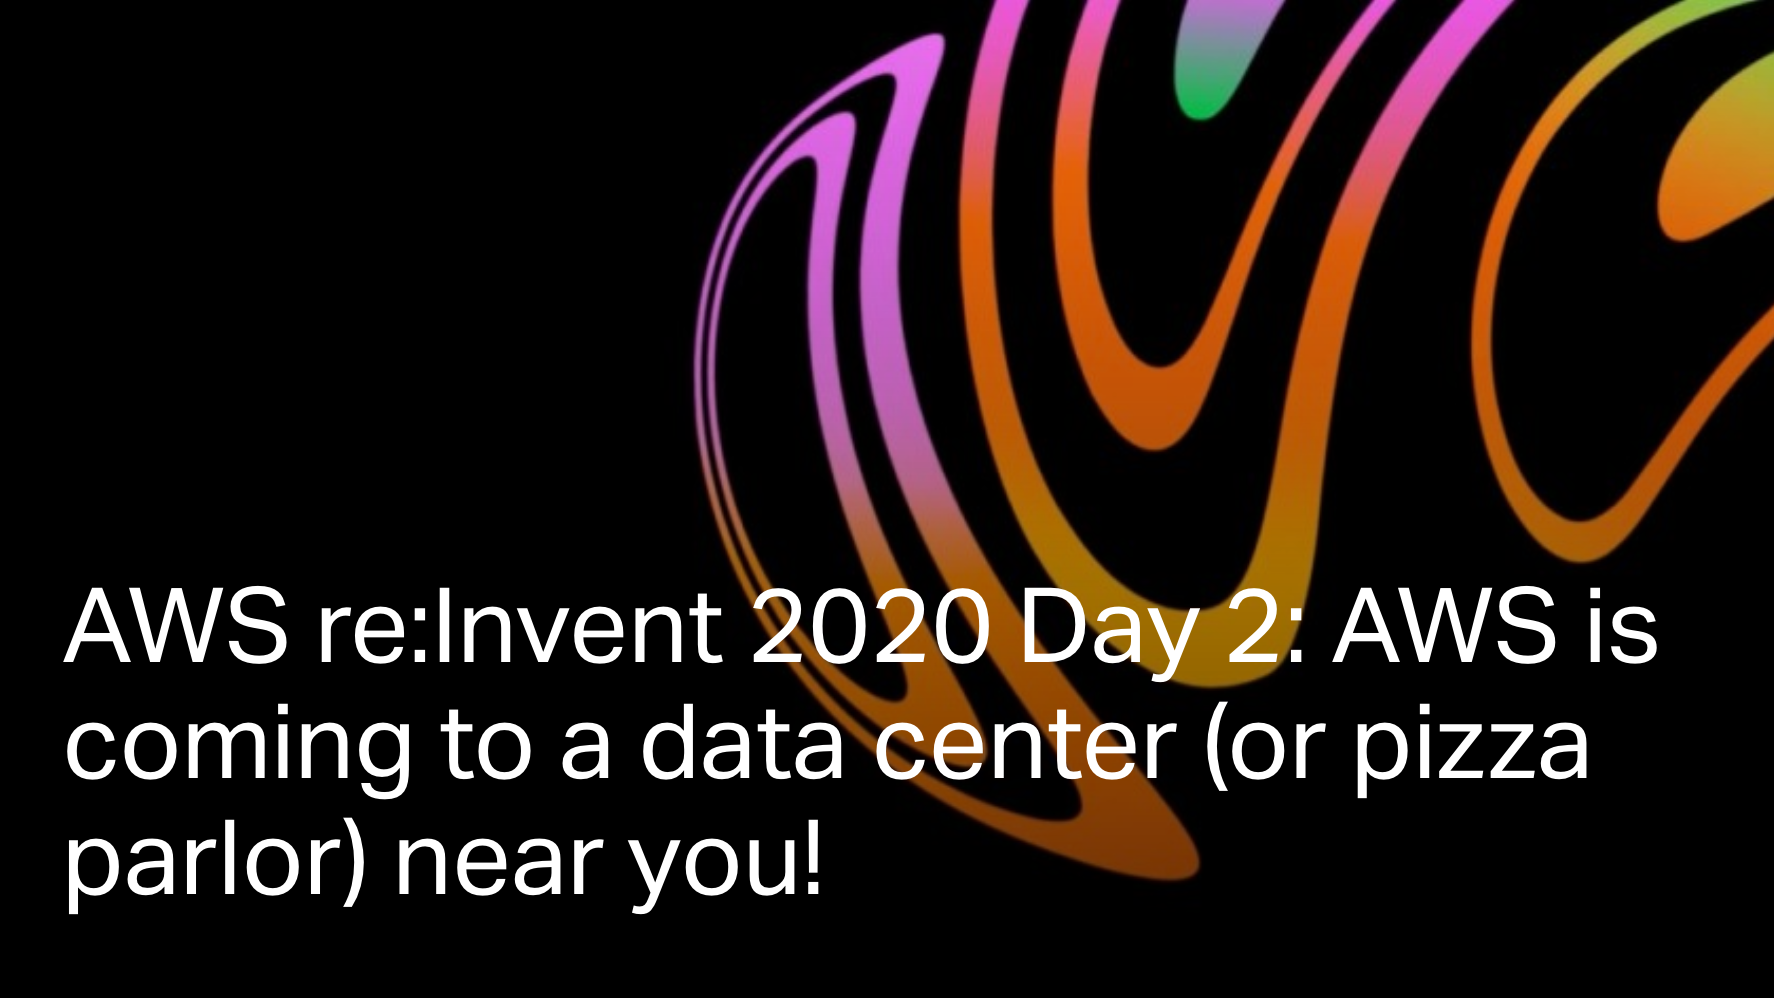 AWS re:Invent 2020 Day 2: AWS is coming to a data center (or pizza parlor) near you!